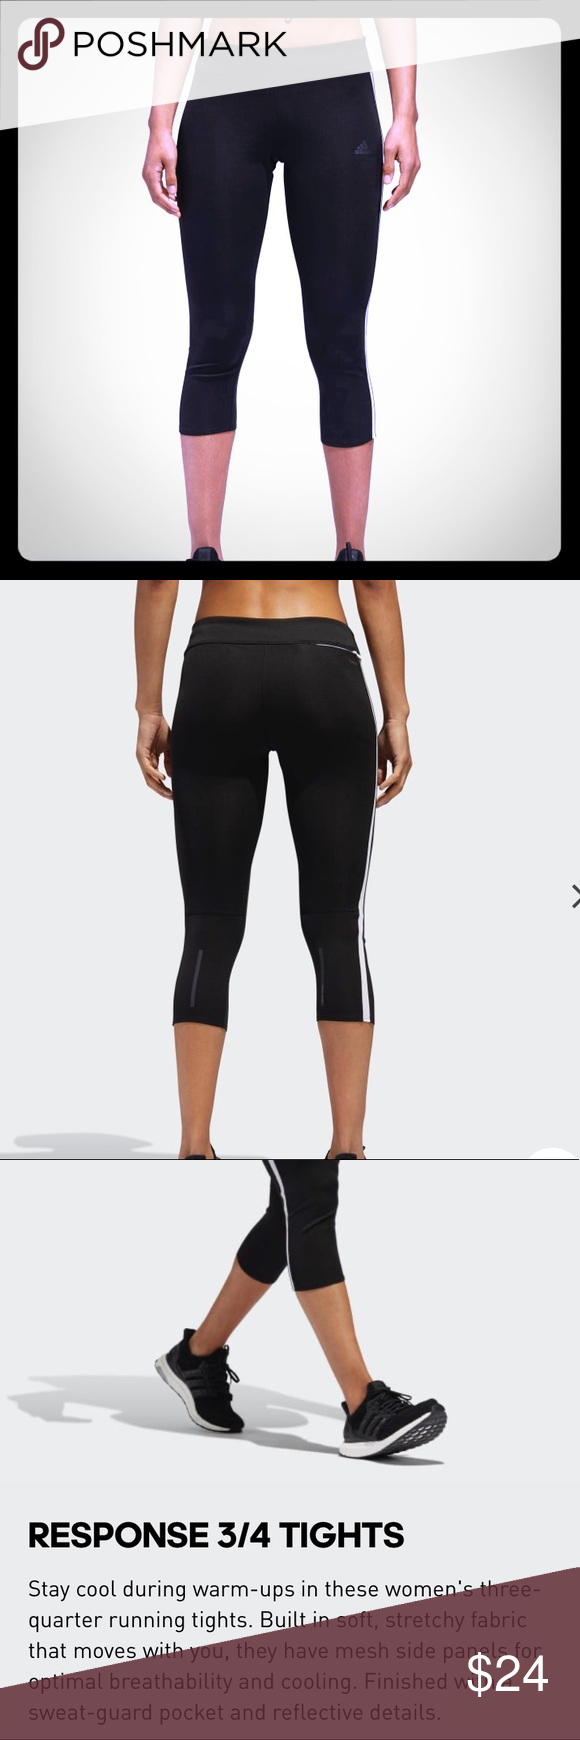 Uomo ricco soddisfazione ie  Adidas response climacool tights in 2020 | Adidas response, Leggings are  not pants, Tights